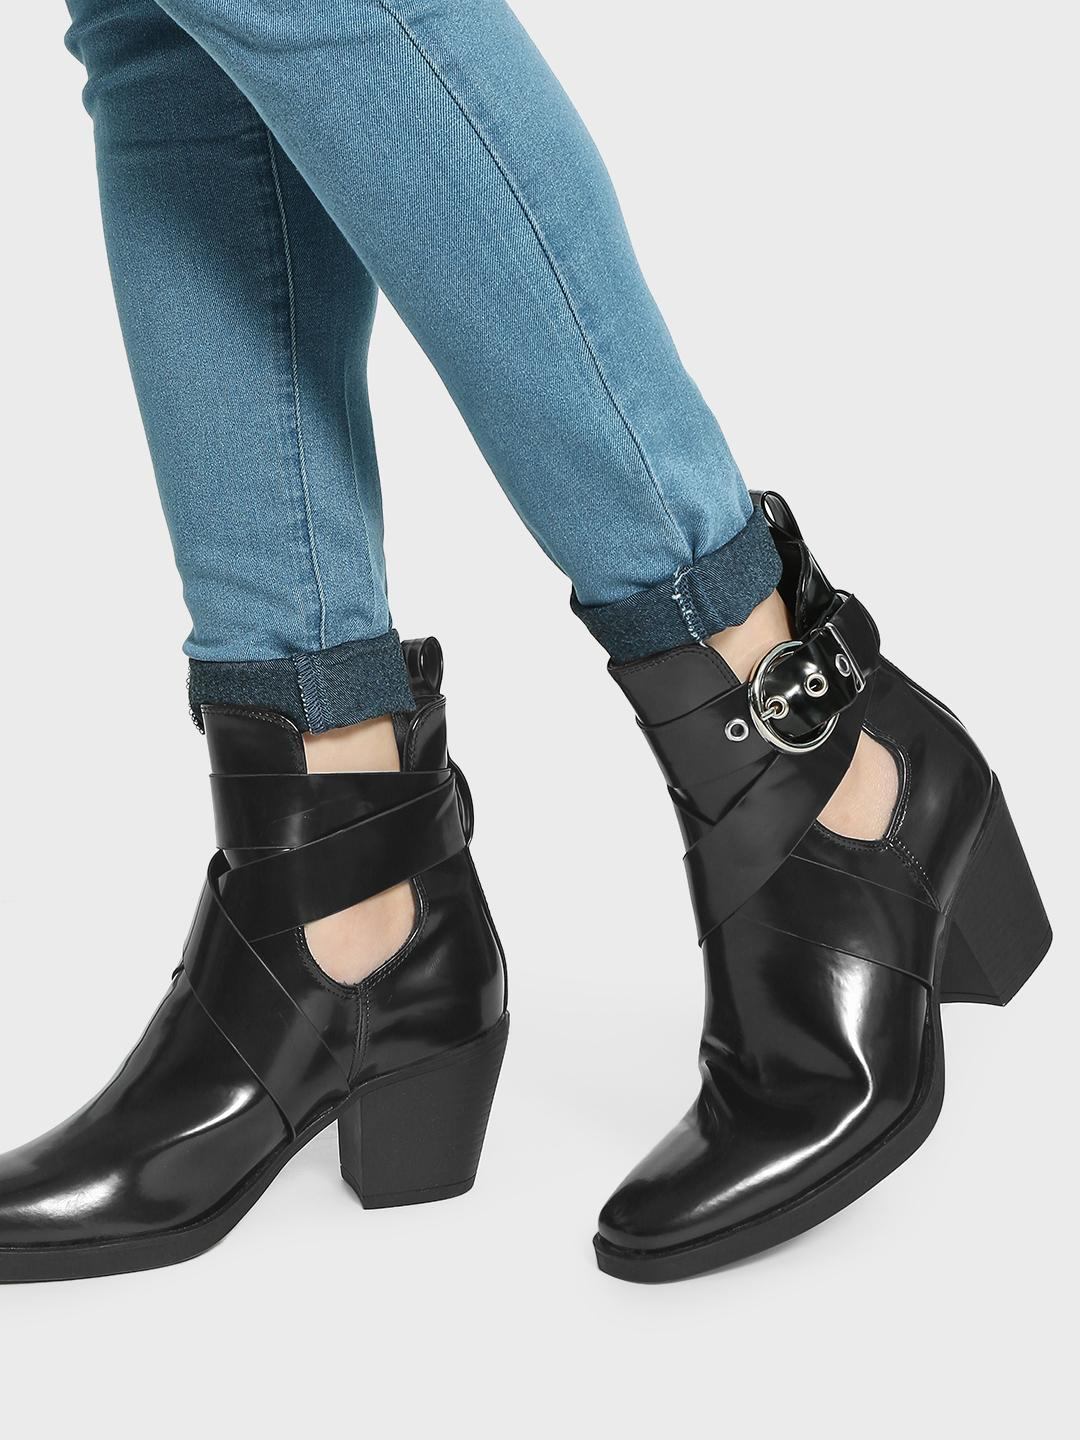 Truffle Collection Black Buckle Cross Strap Heeled Boots 1